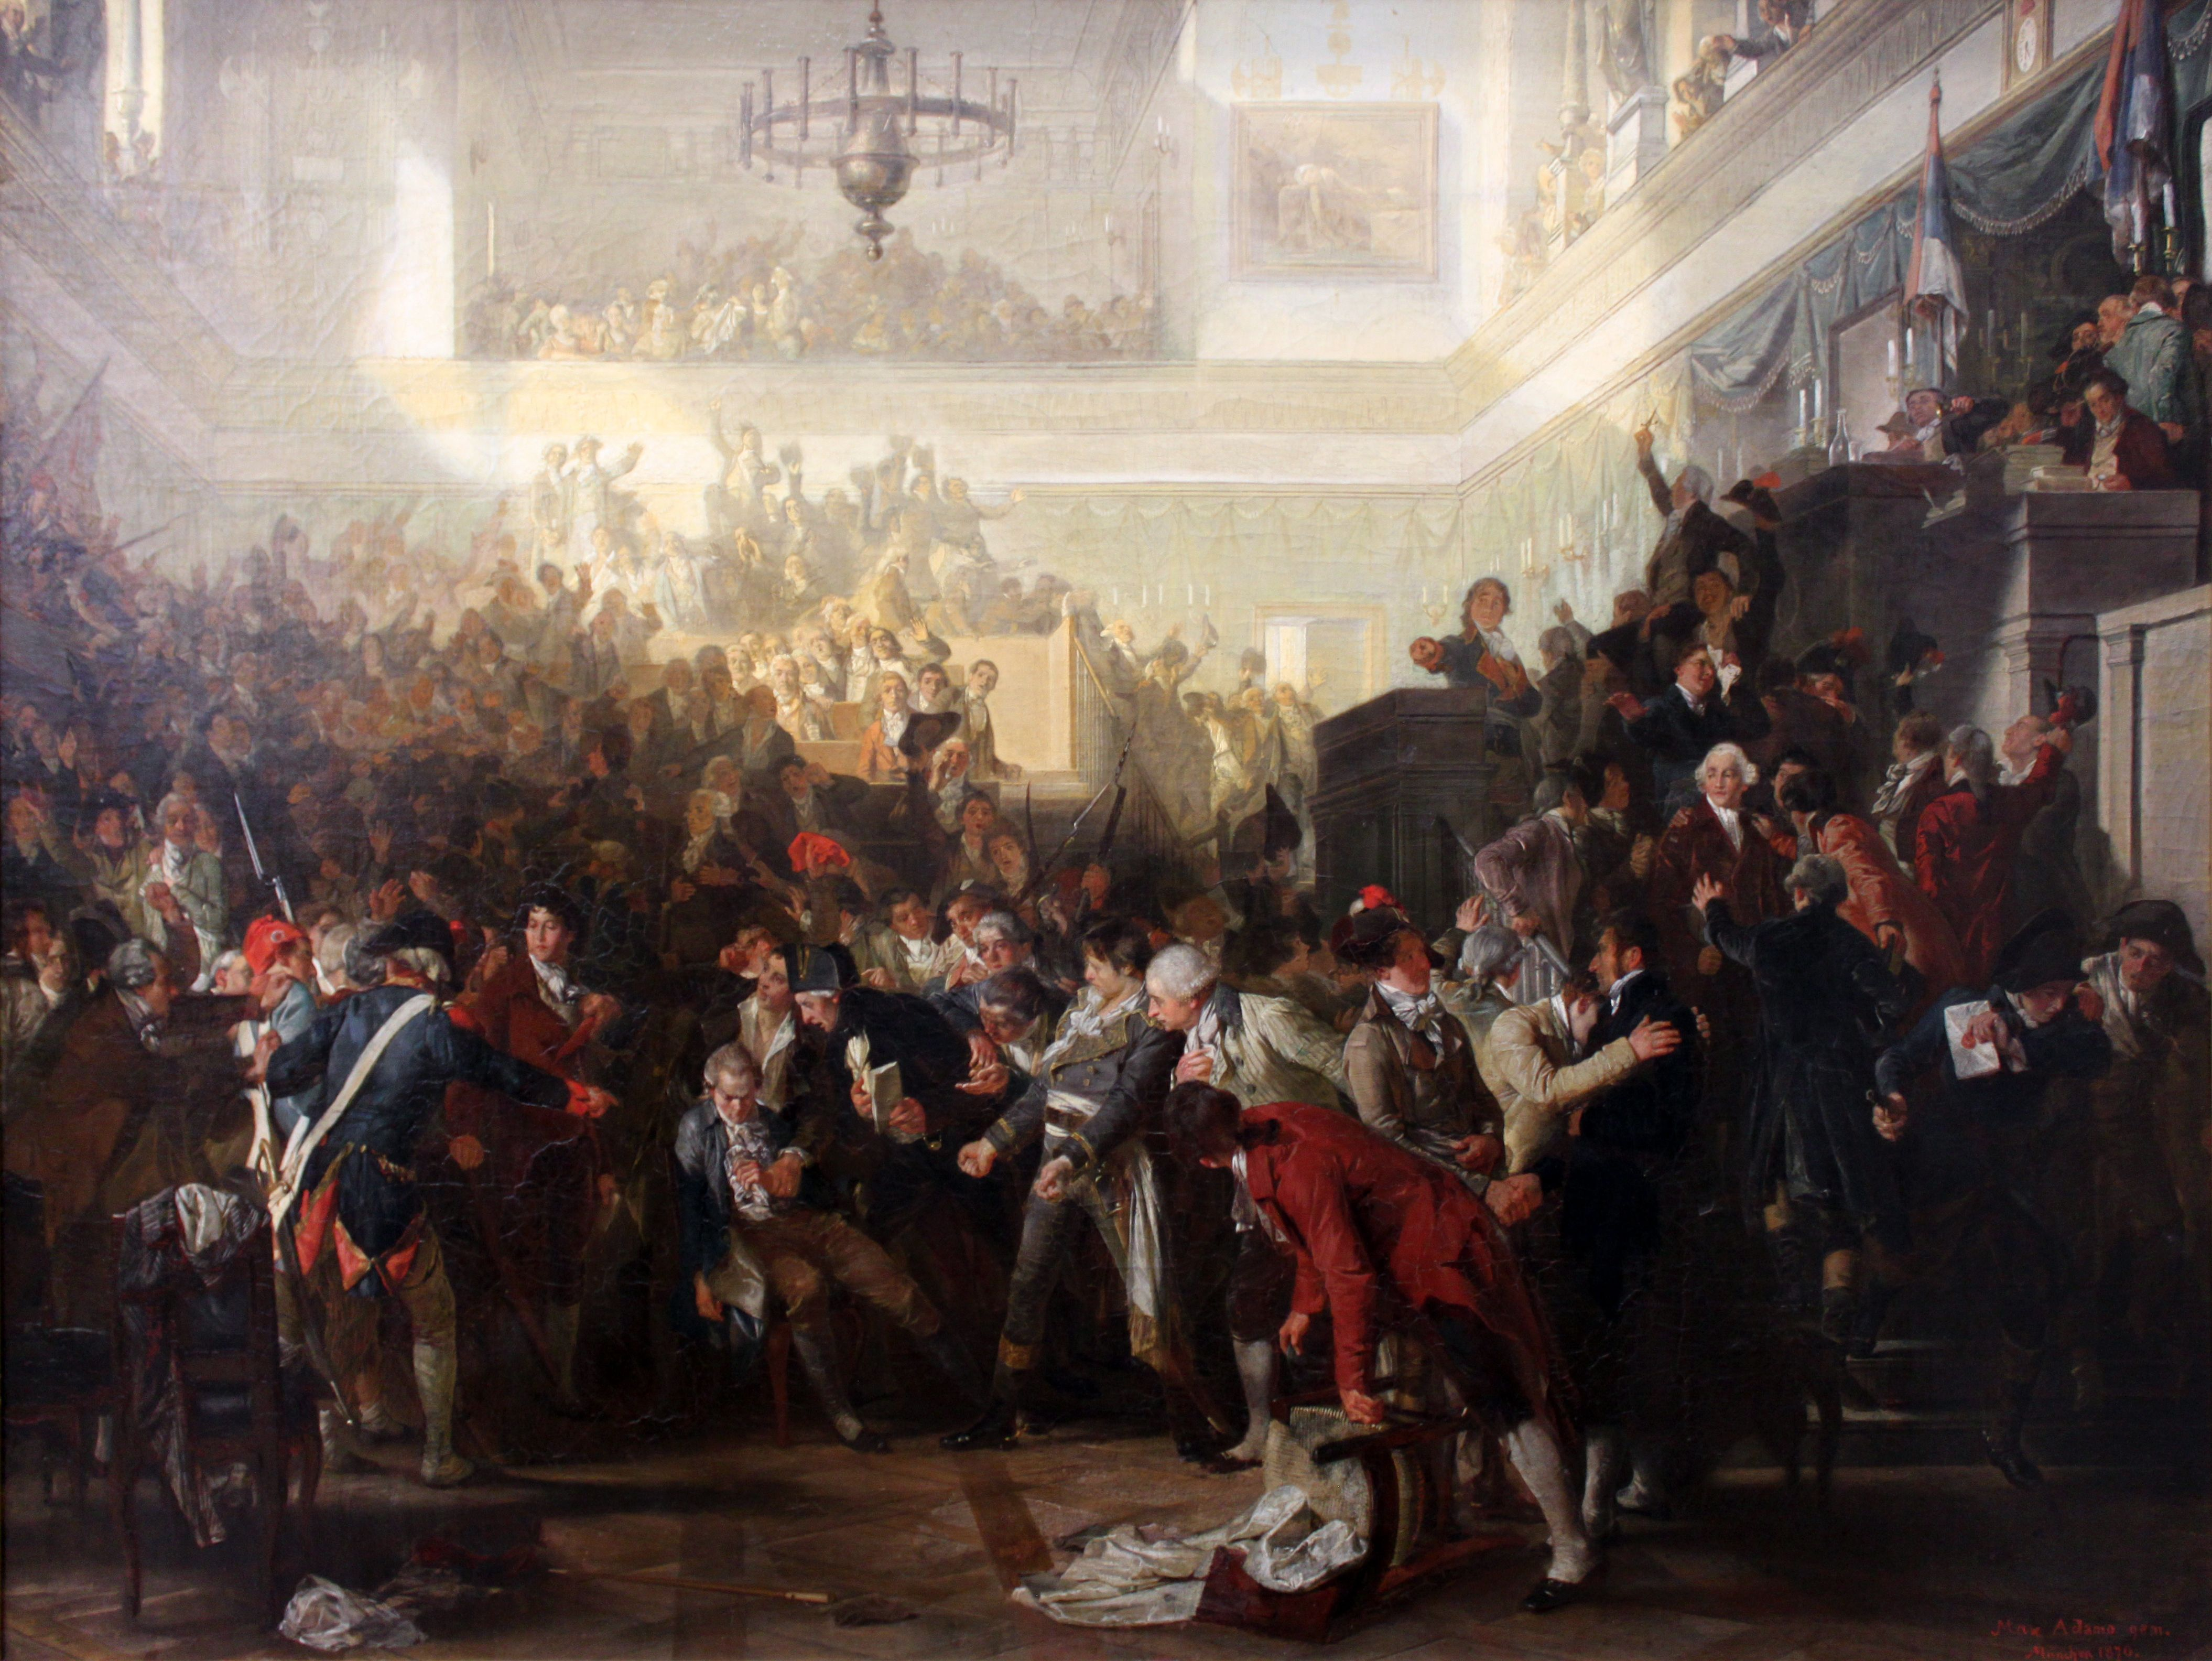 What event meant the Thermidorian coup in France? Causes, significance 10